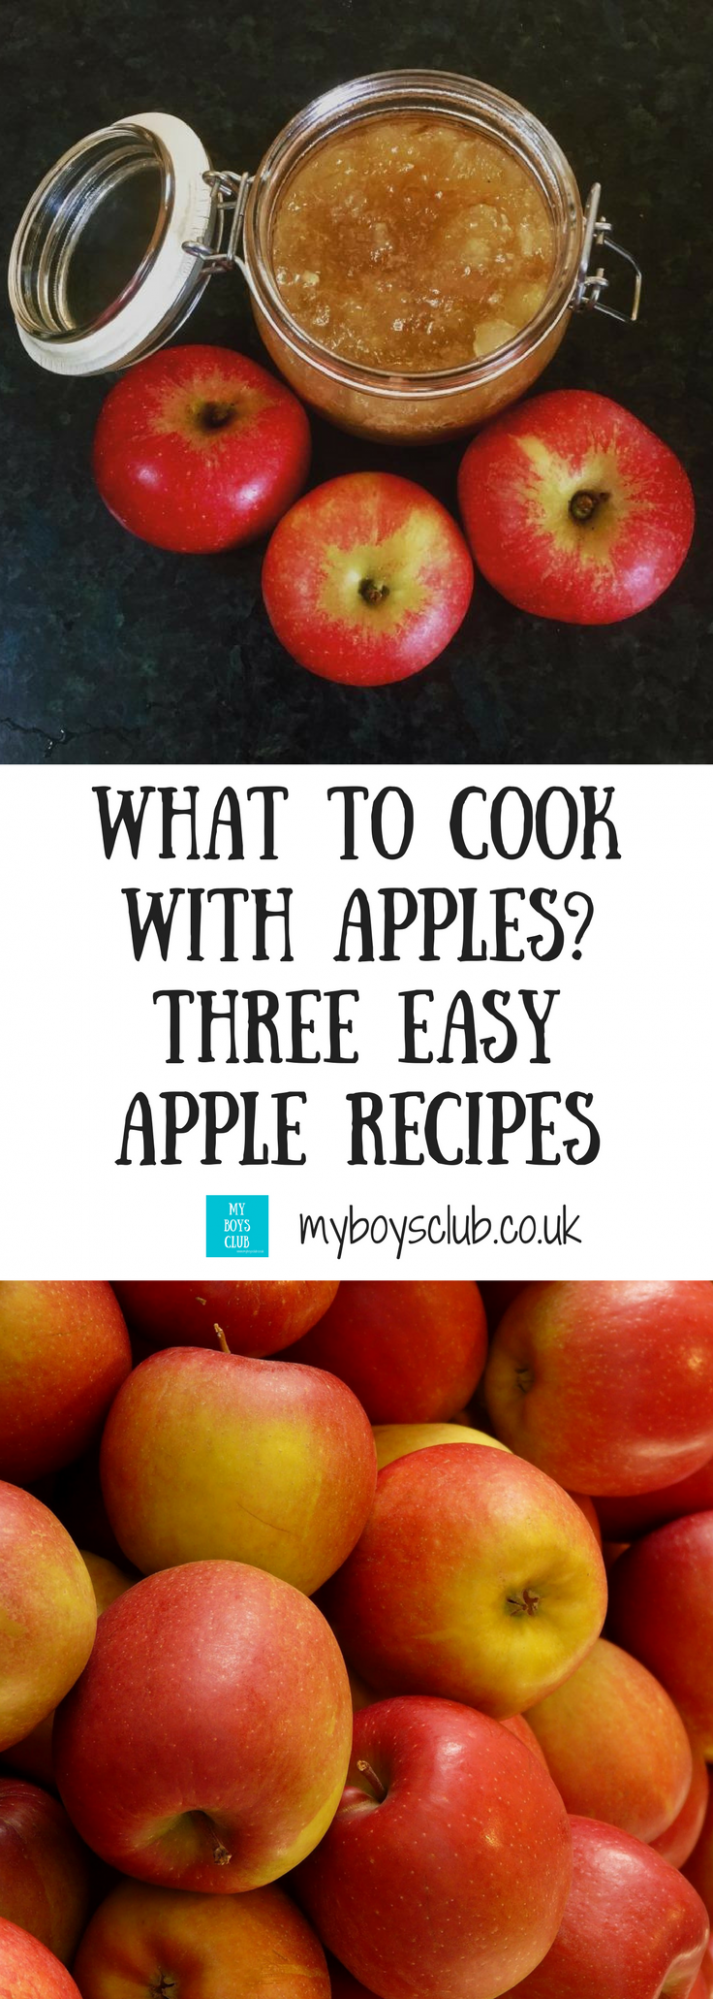 What to Cook with Apples? Three Easy Apple Recipes | Apple recipes ..